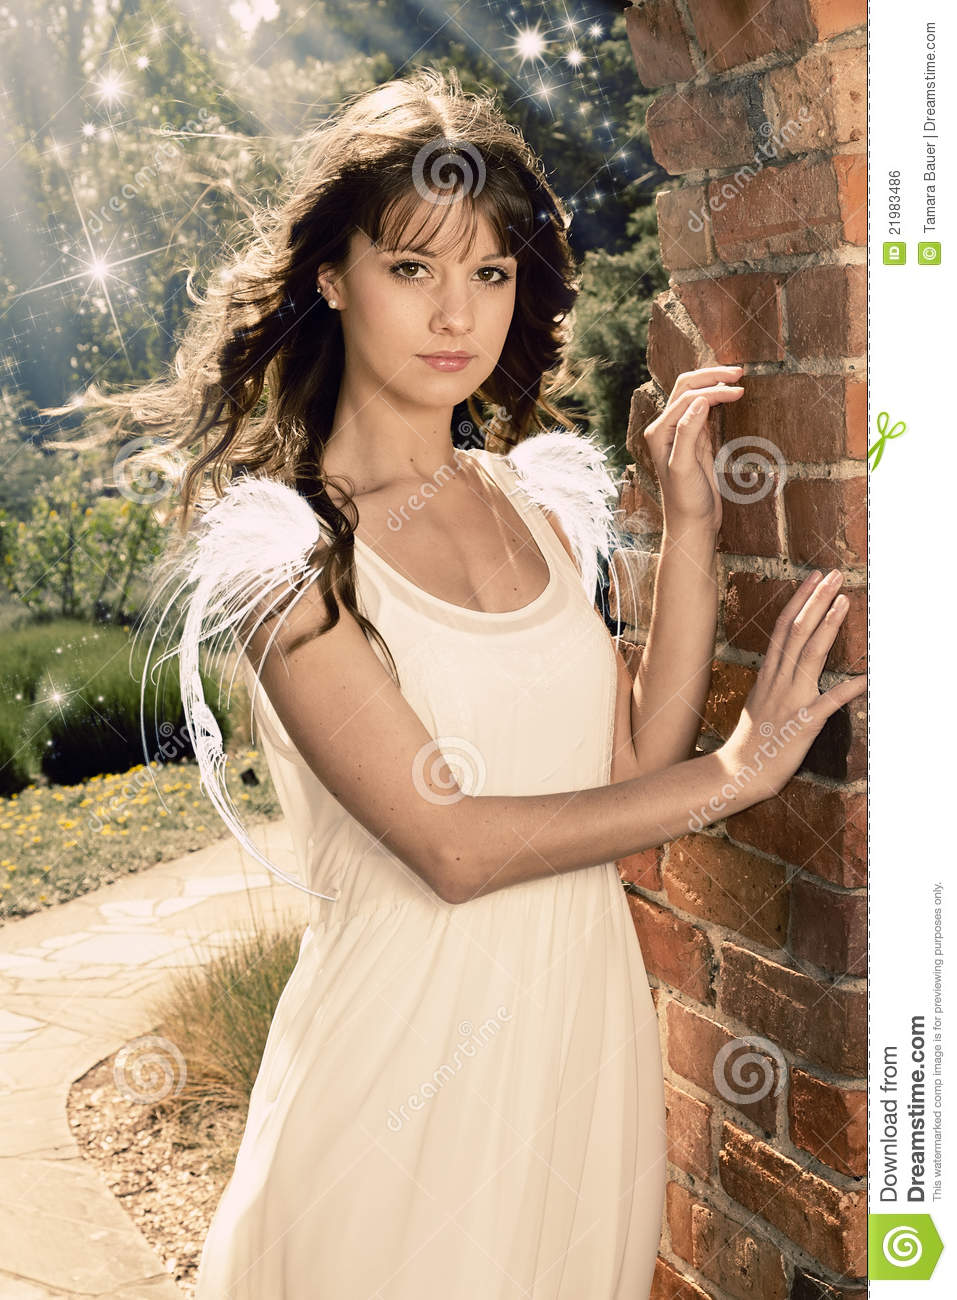 Beautiful angel pictures download